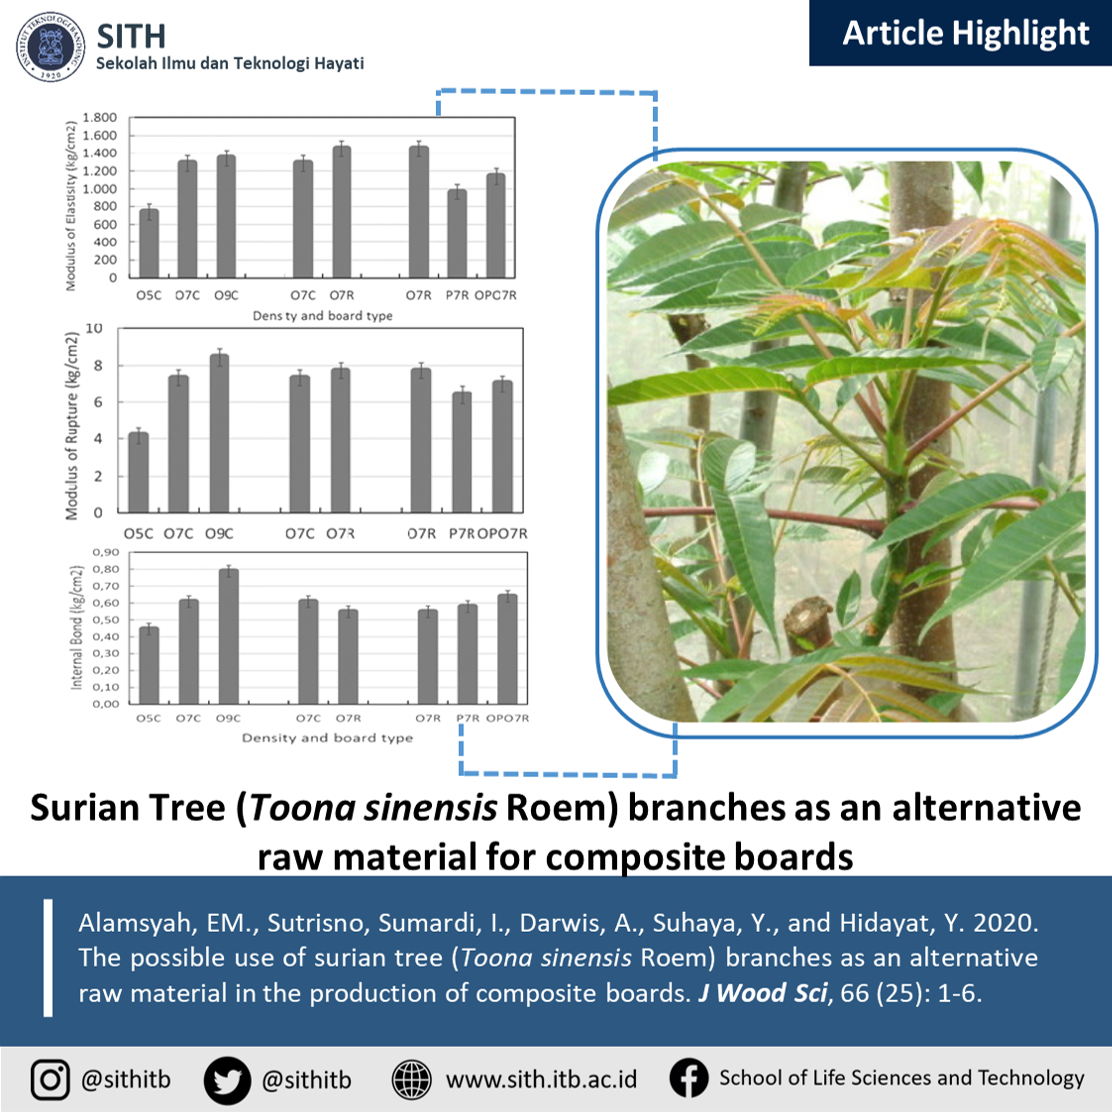 The possible use of surian tree (Toona sinensis Roem) branches as an alternative raw material in the production of composite boards